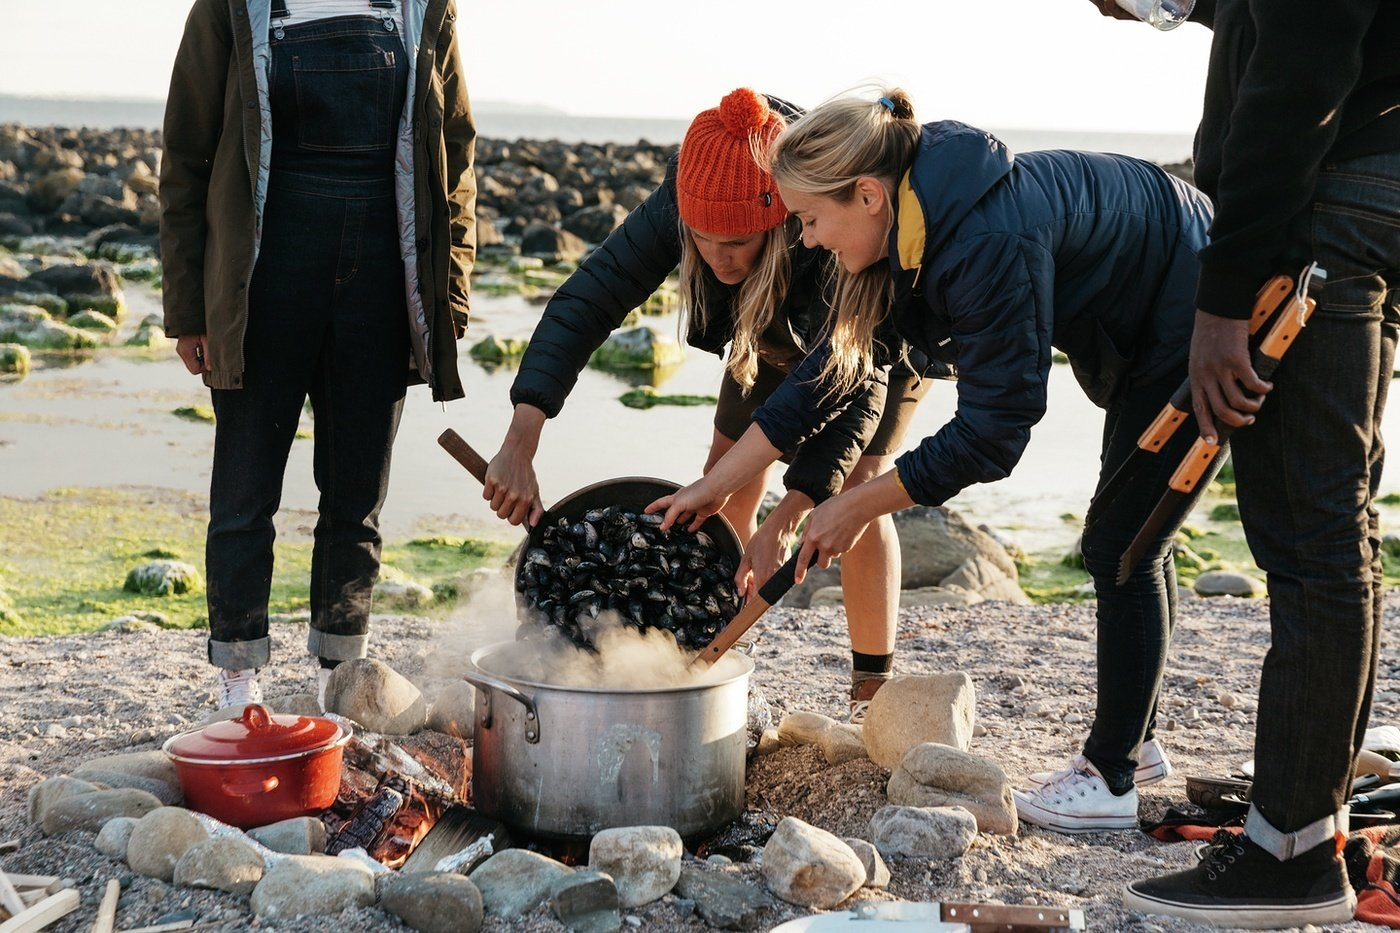 Sustainable fashion with sustainable food - this summers Finisterre Shoot